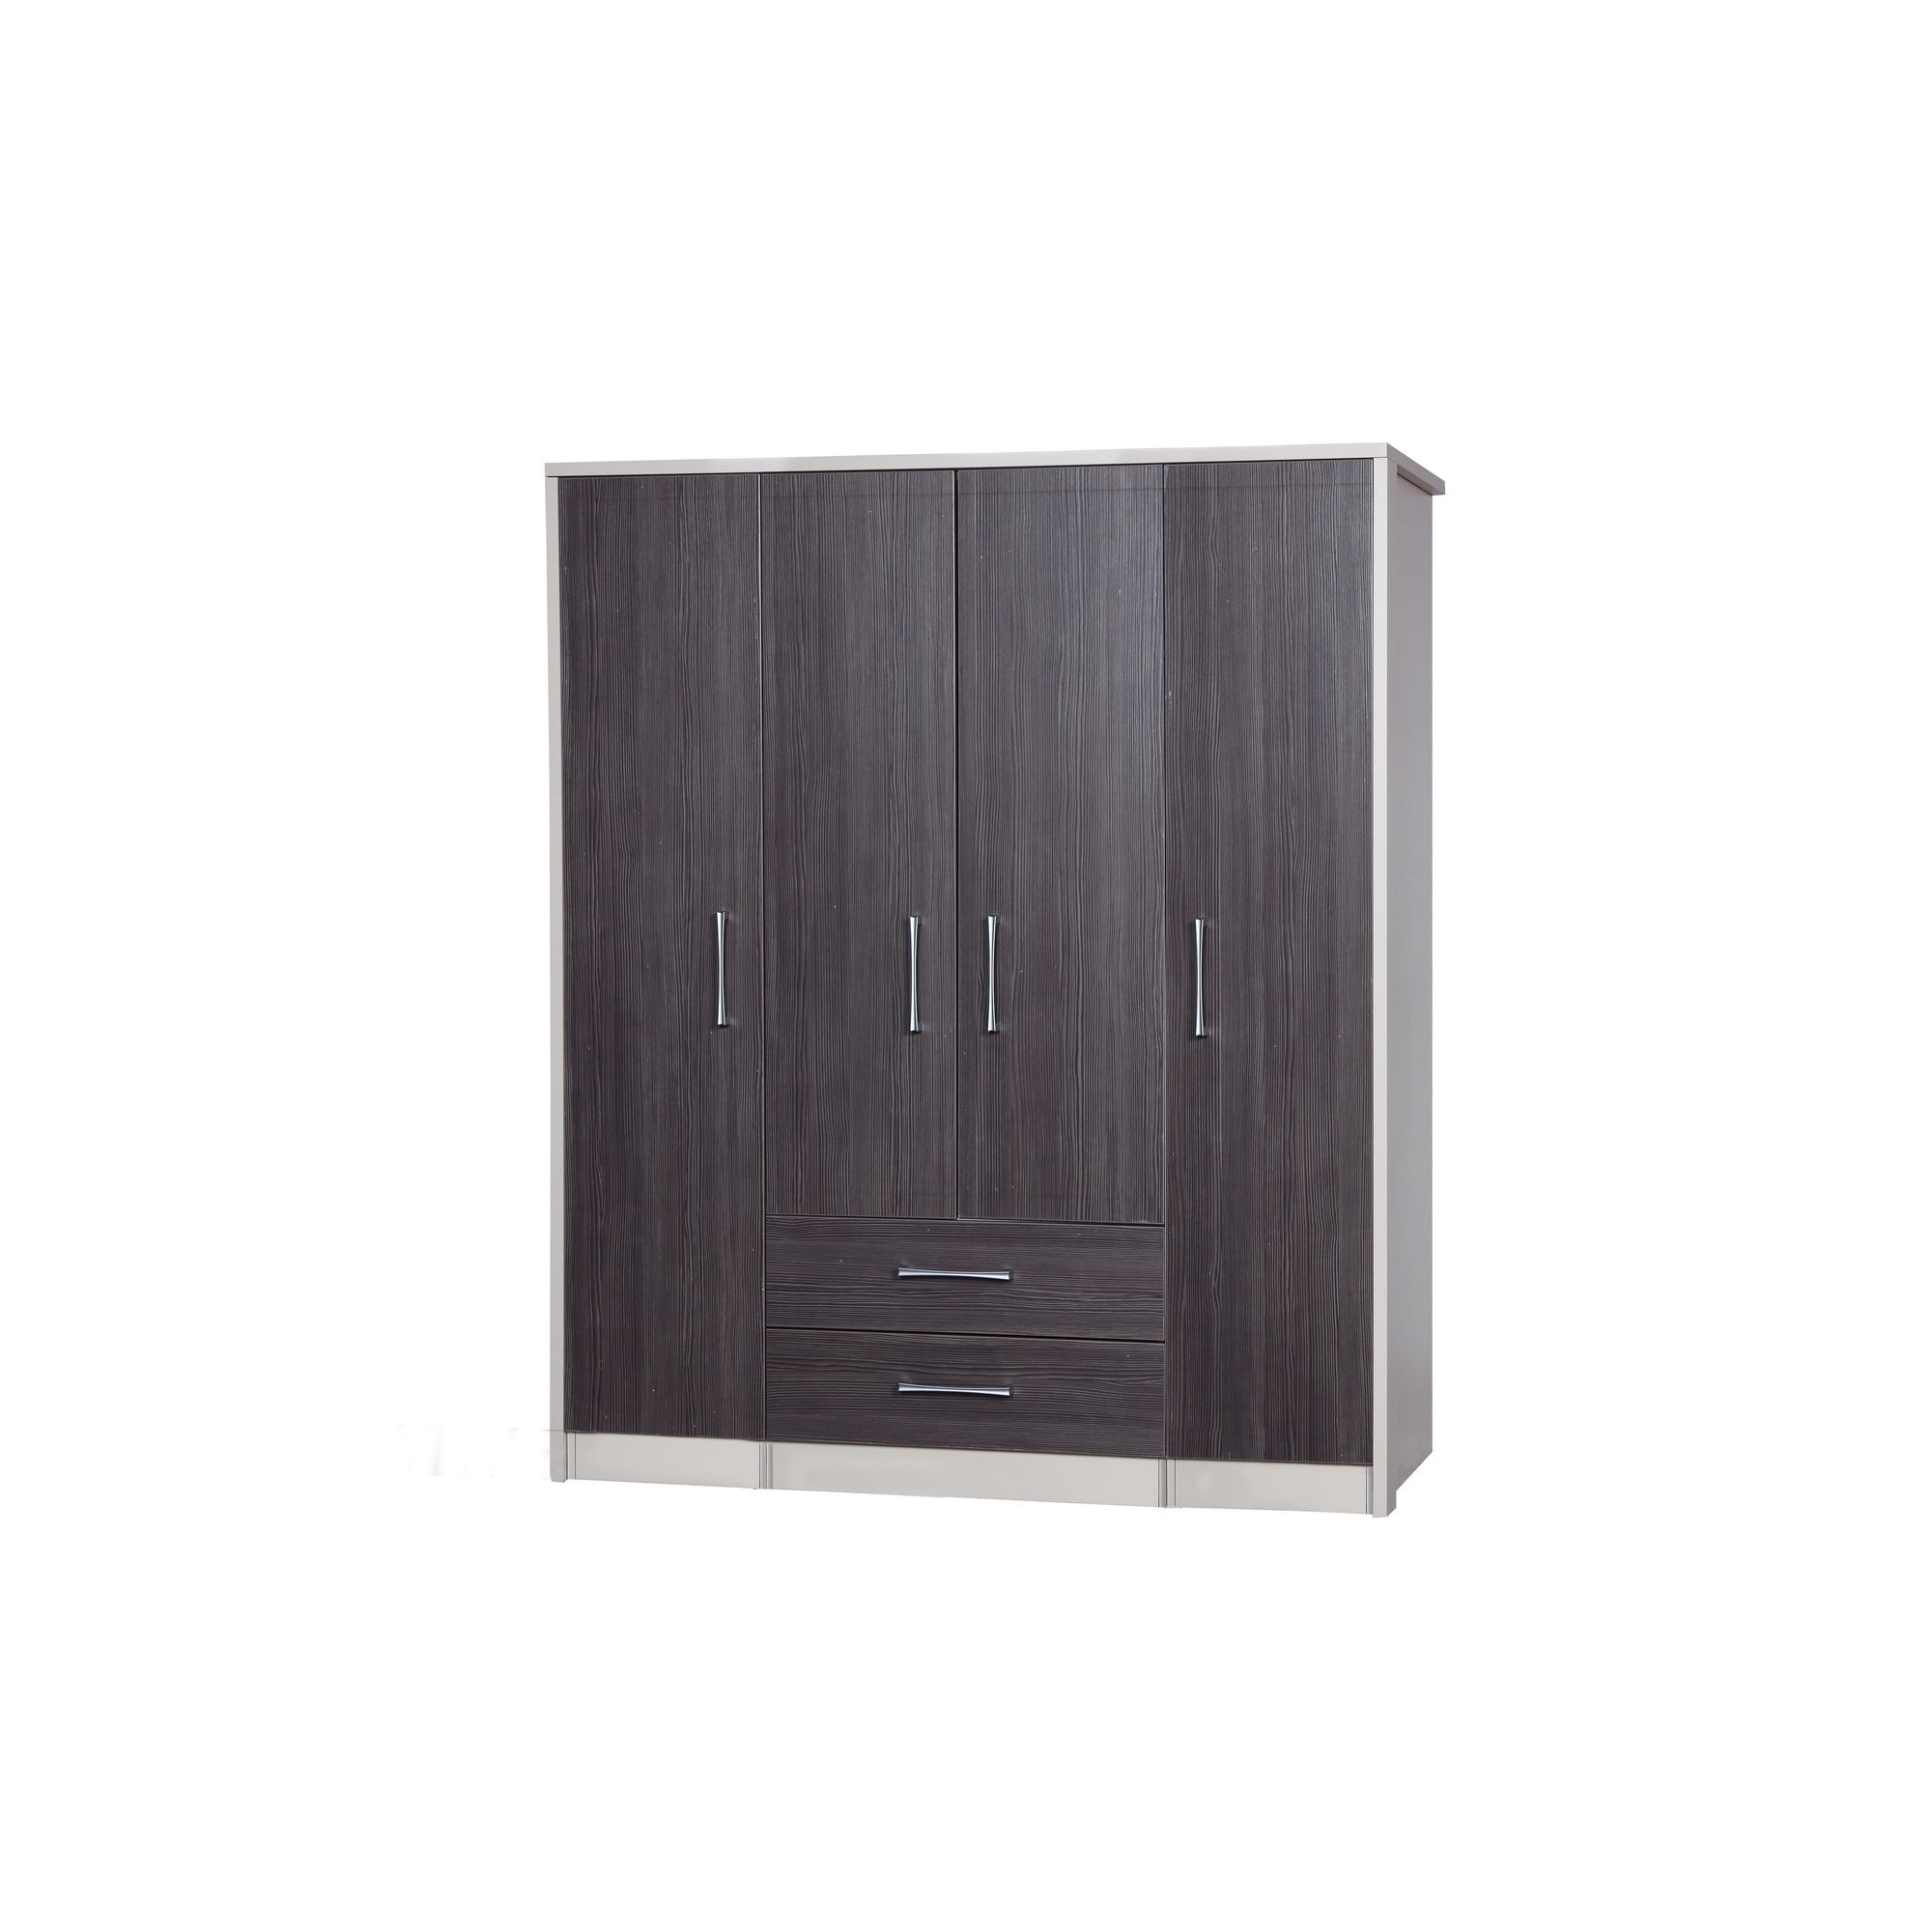 Alto Furniture Avola 4 Door Combi and Singles Wardrobe - Cream Carcass With Grey Avola at Tescos Direct